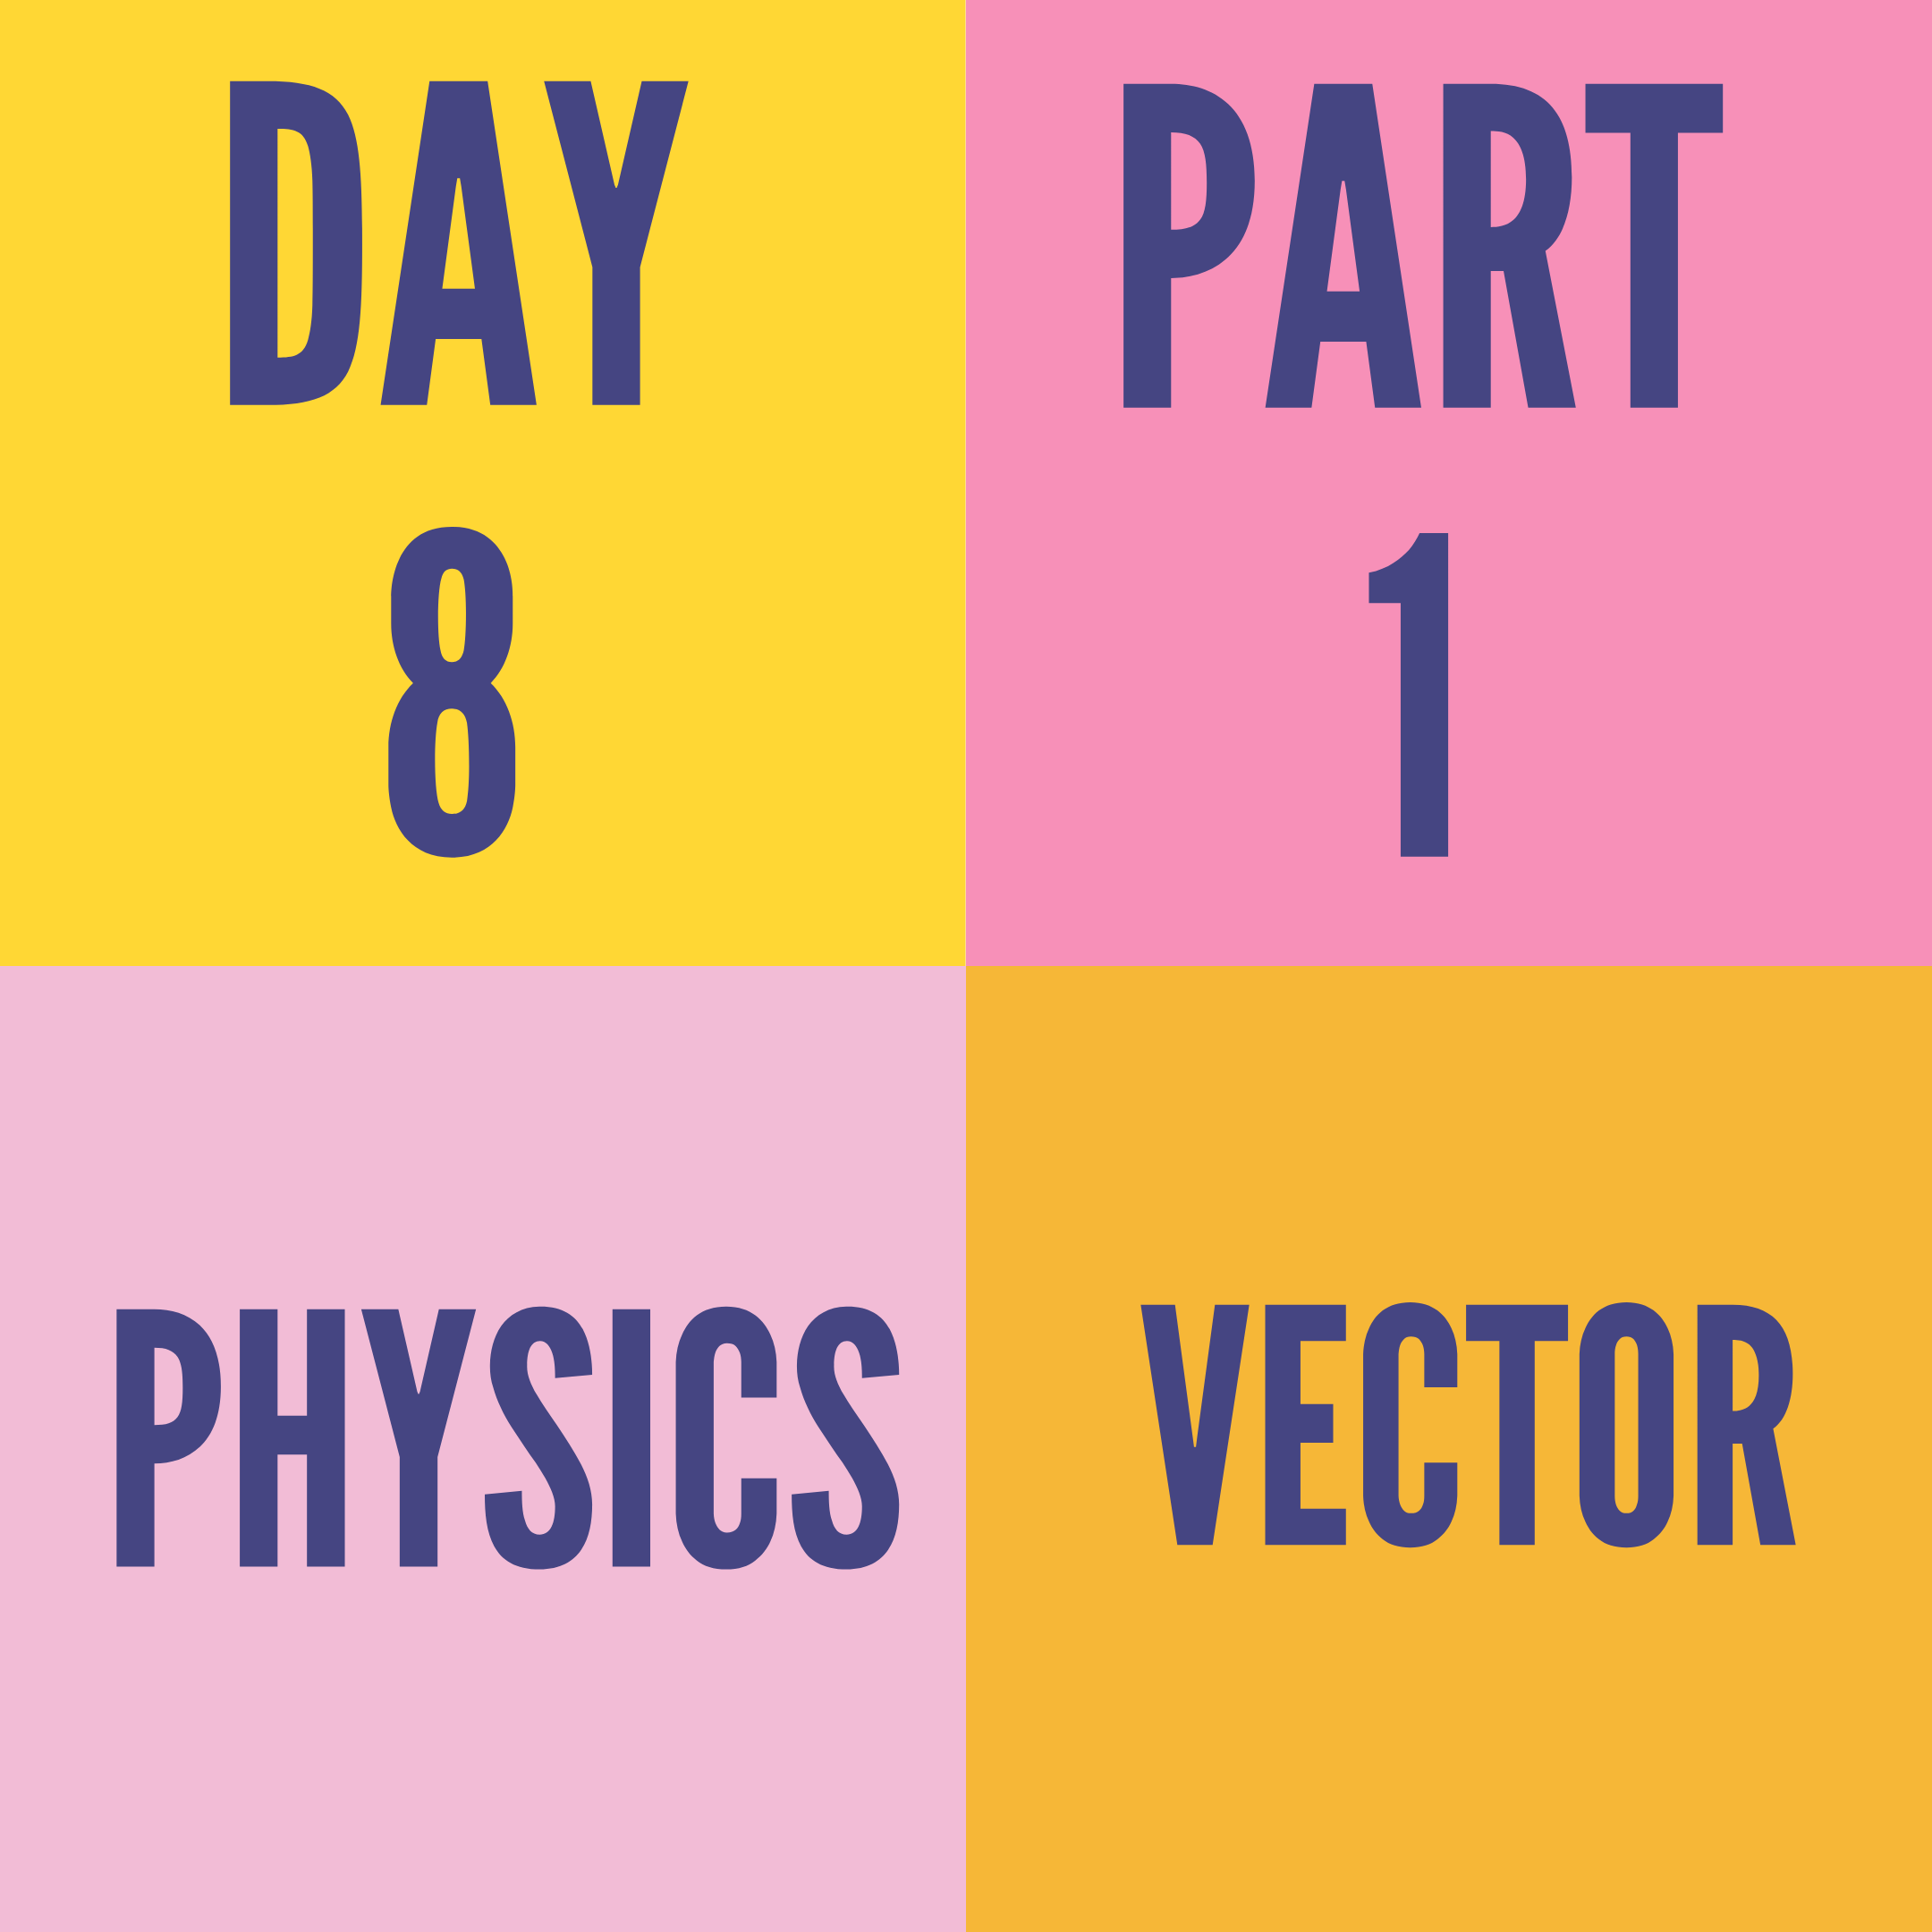 DAY-8 PART-1 VECTOR